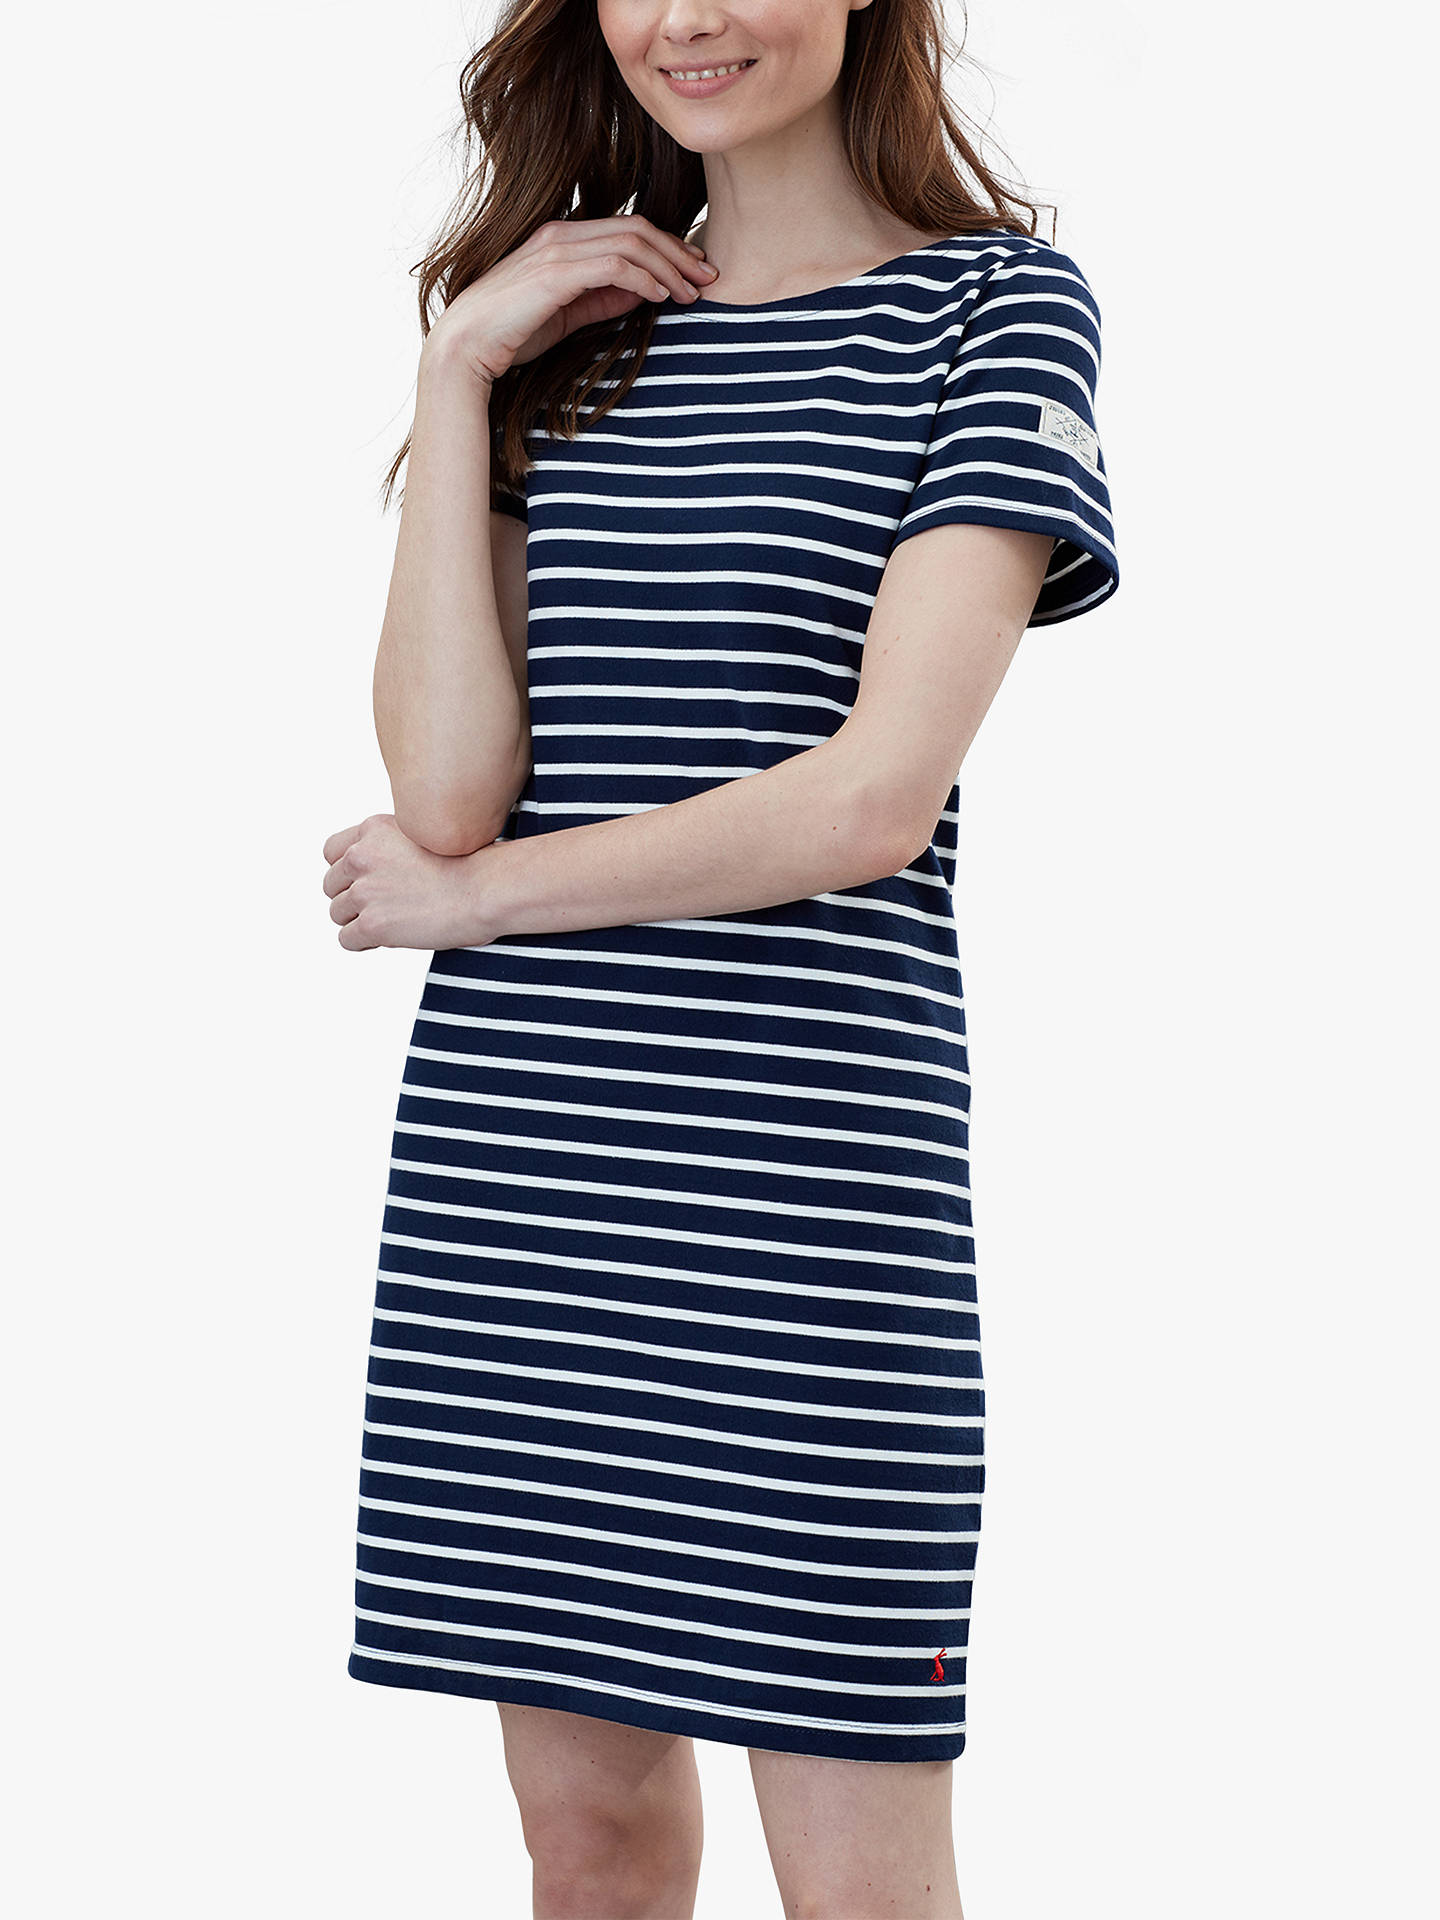 268c7bcb549 Buy Joules Riviera Short Sleeve Jersey Dress, Navy/Cream, 6 Online at  johnlewis ...